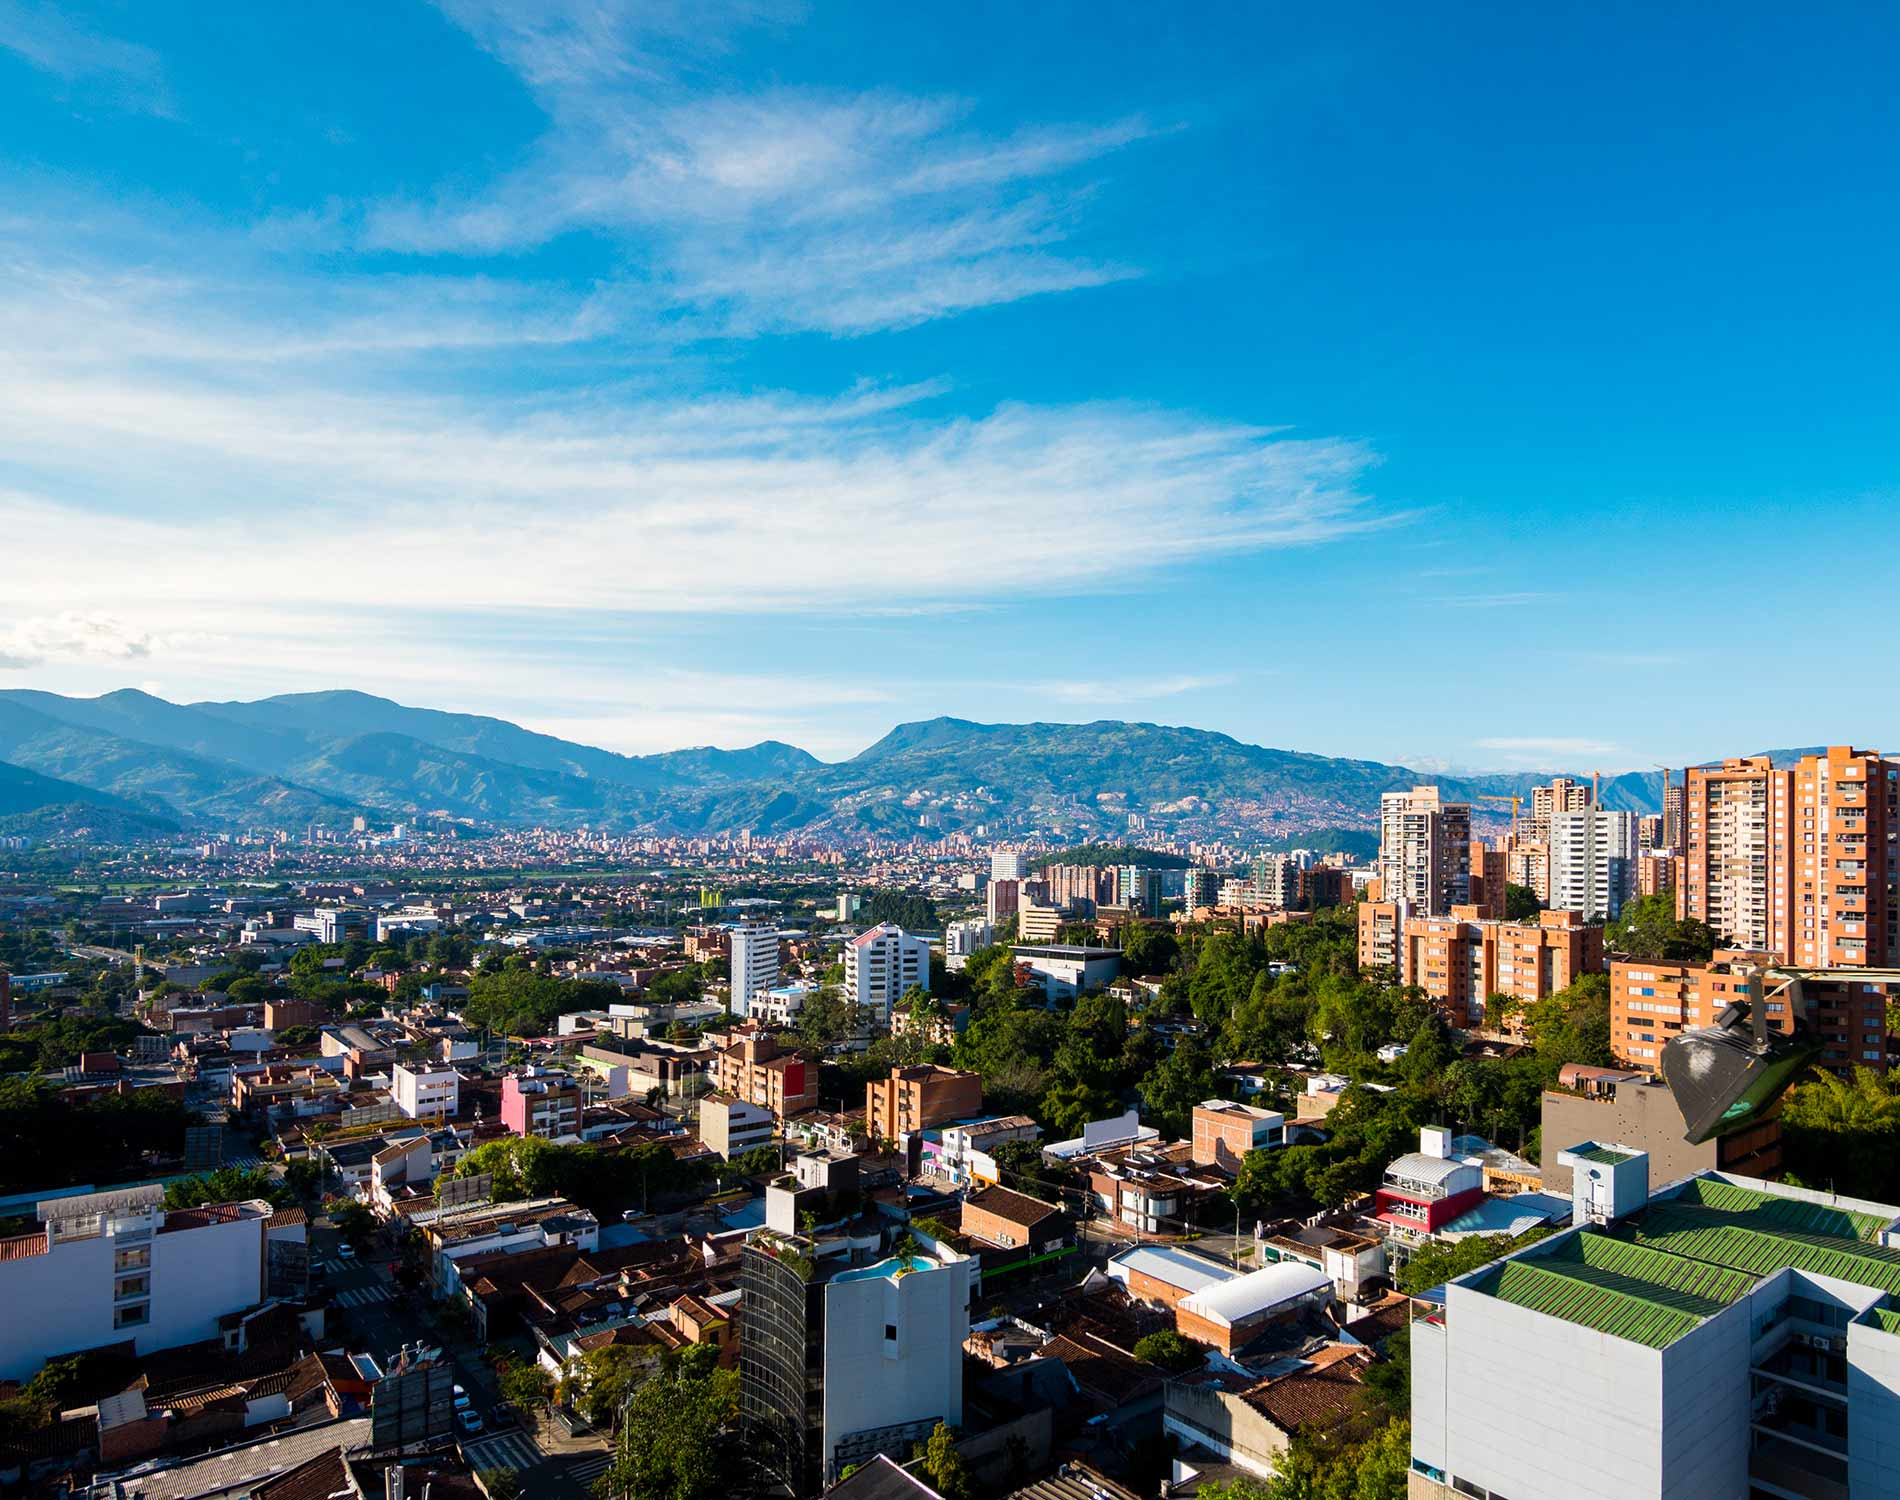 /-/media/images/website/background-images/offices/medellin/medellin.ashx